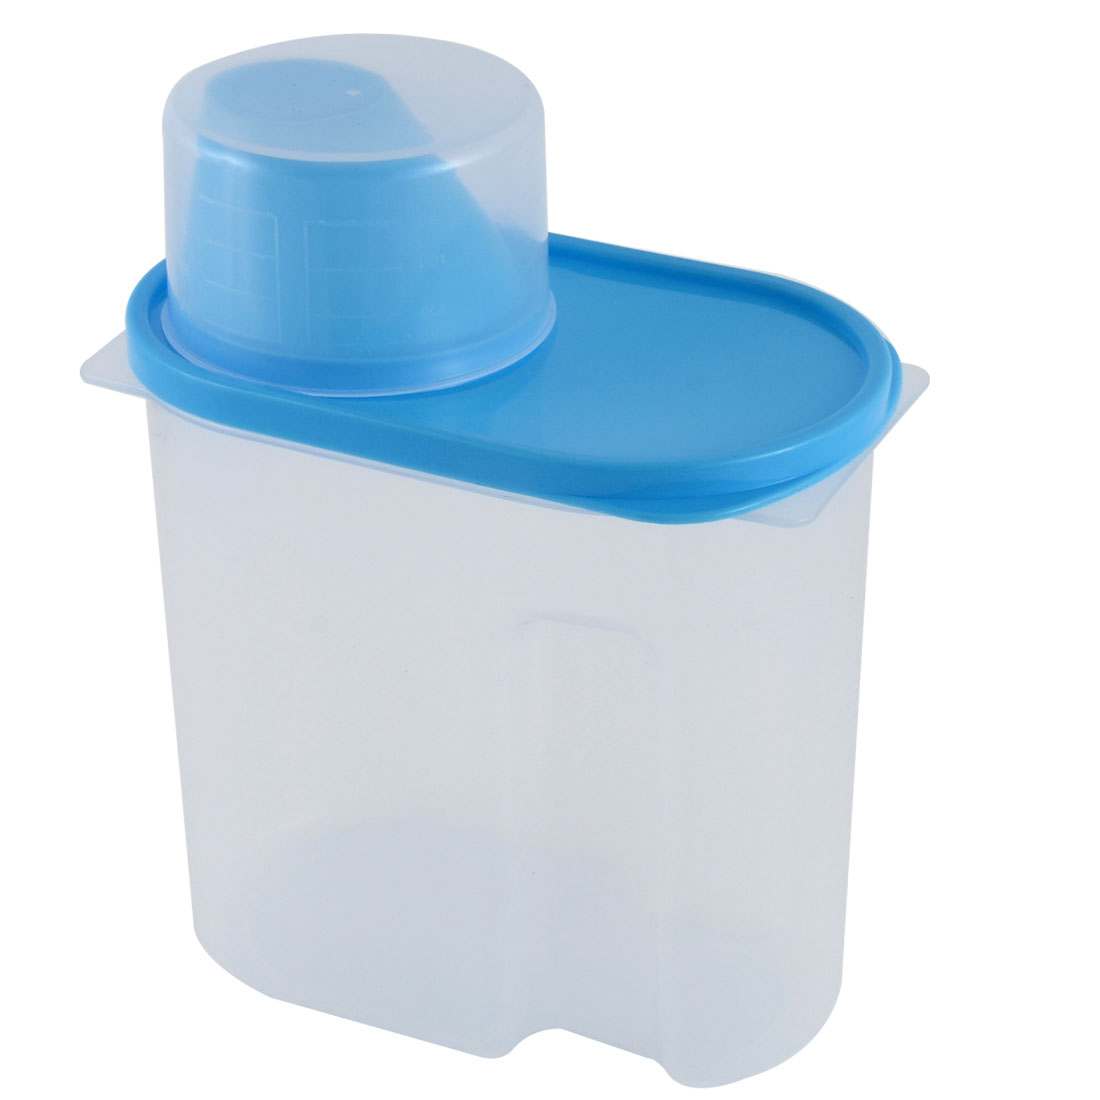 Household Kitchenware Plastic Food Storage Box Airtight Seal Container Blue